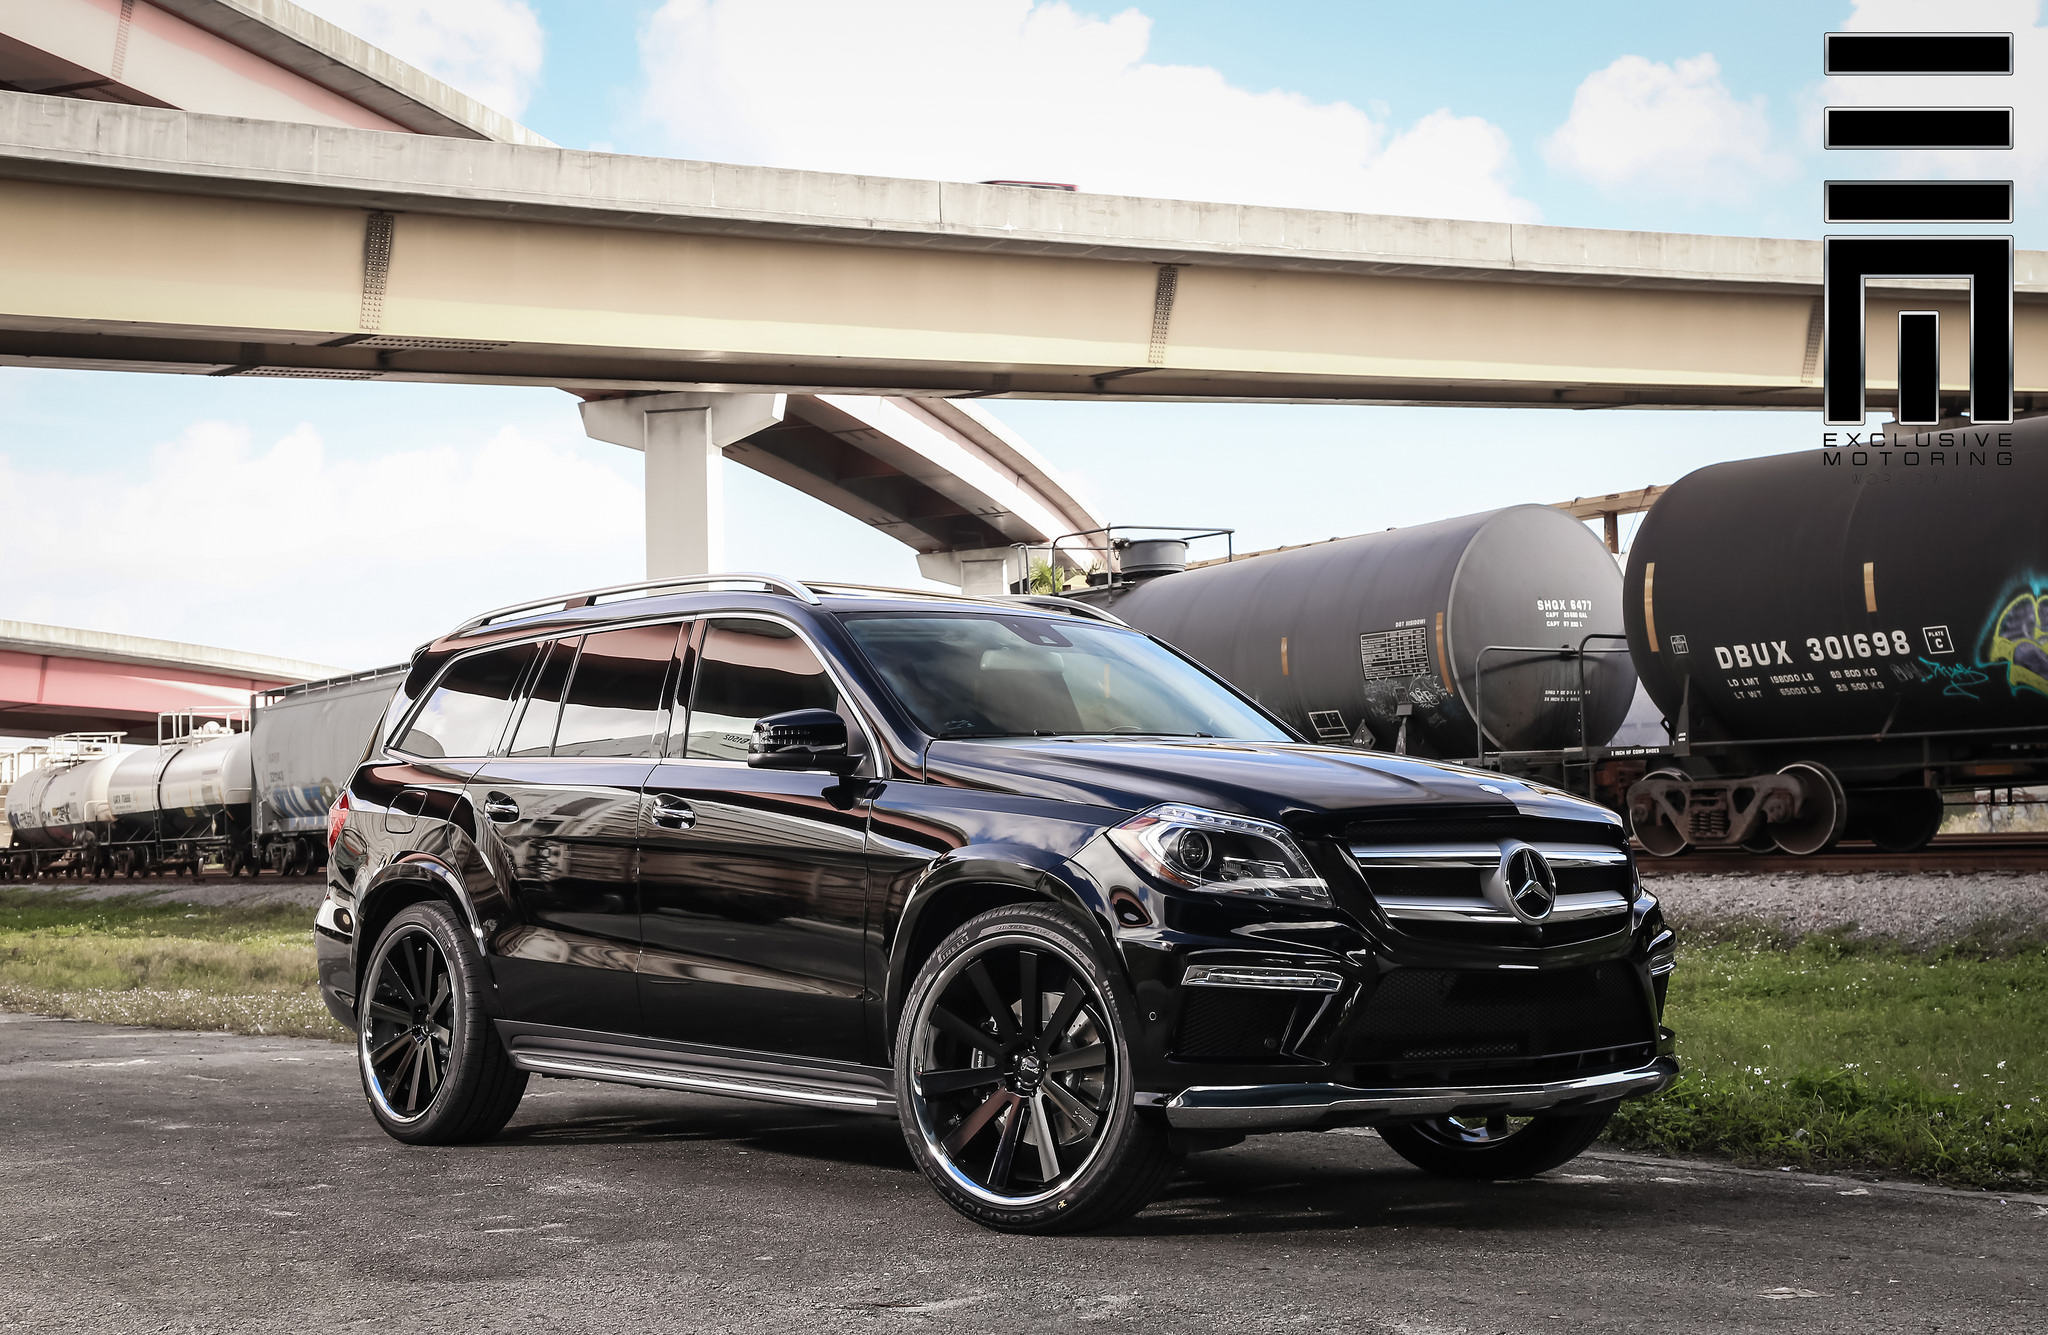 Gianelle Santo 2SS Black on Mercedes Benz GL